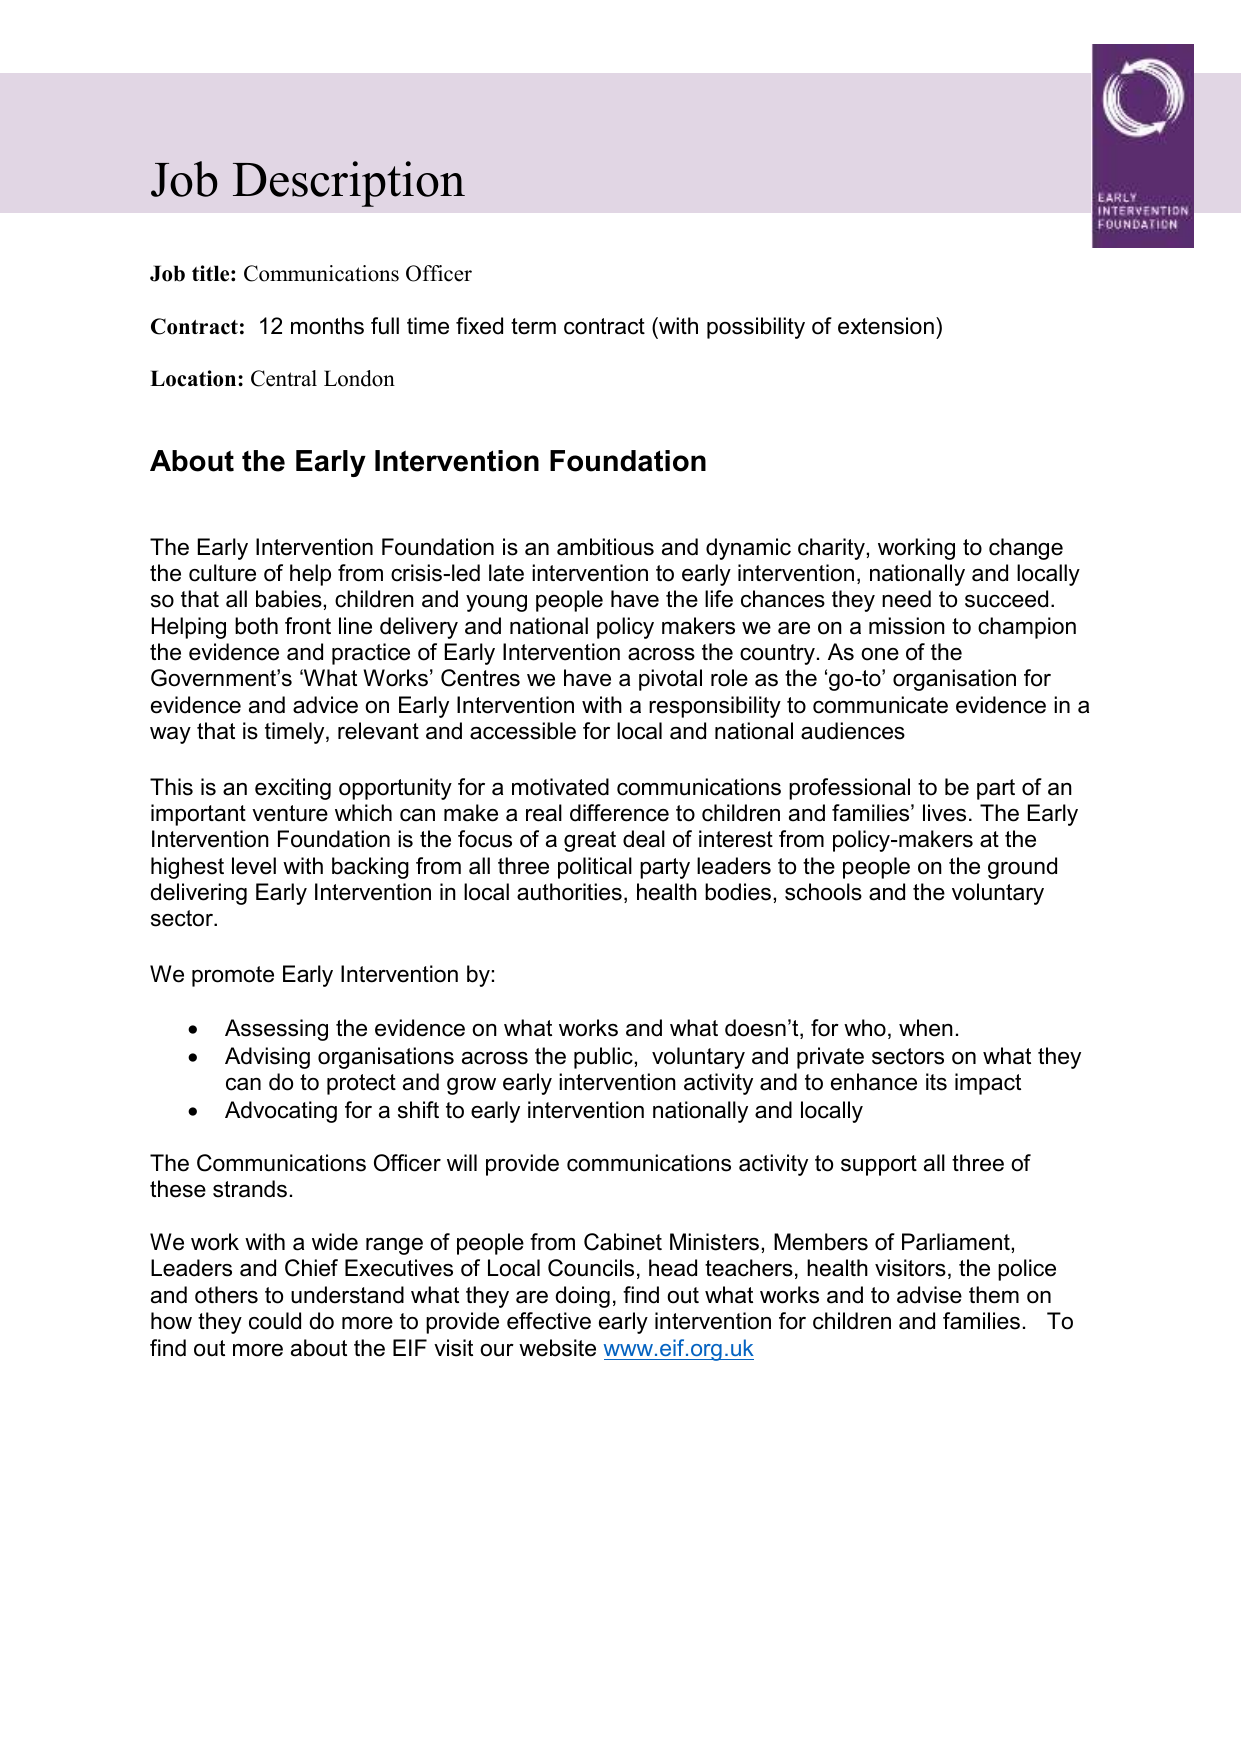 Communications Officer V4 Early Intervention Foundation